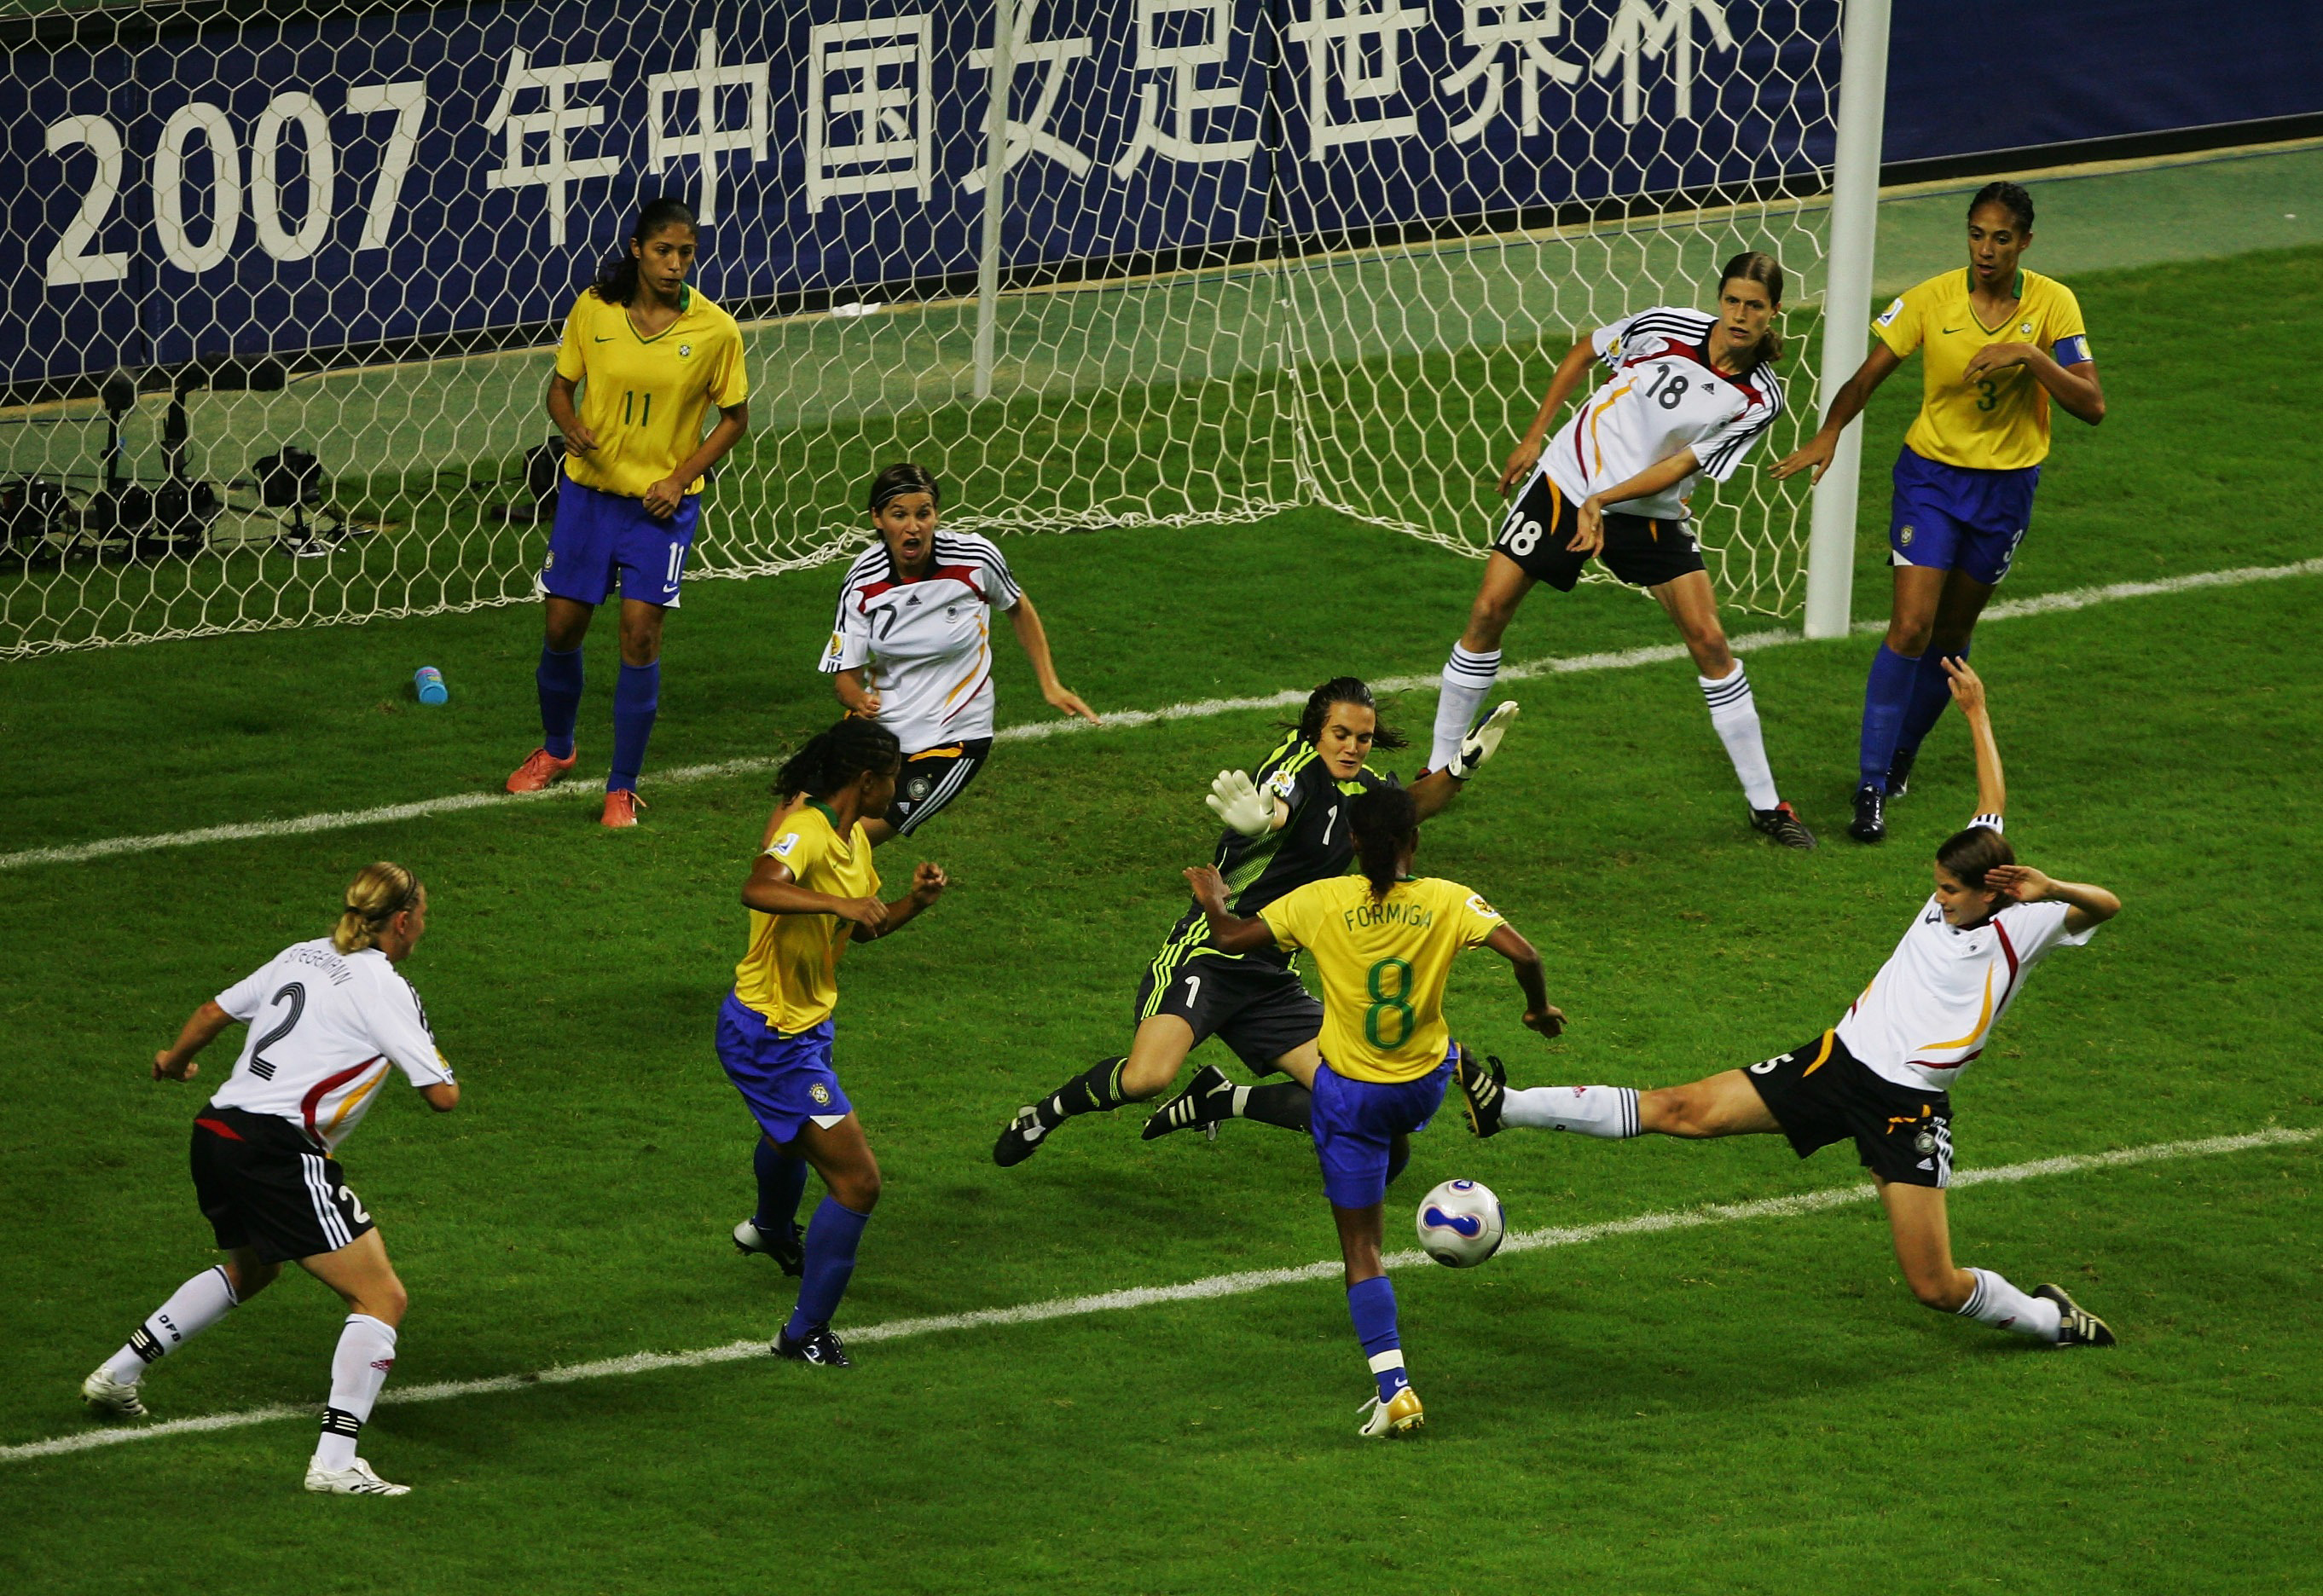 2007 womens world cup brazil germany